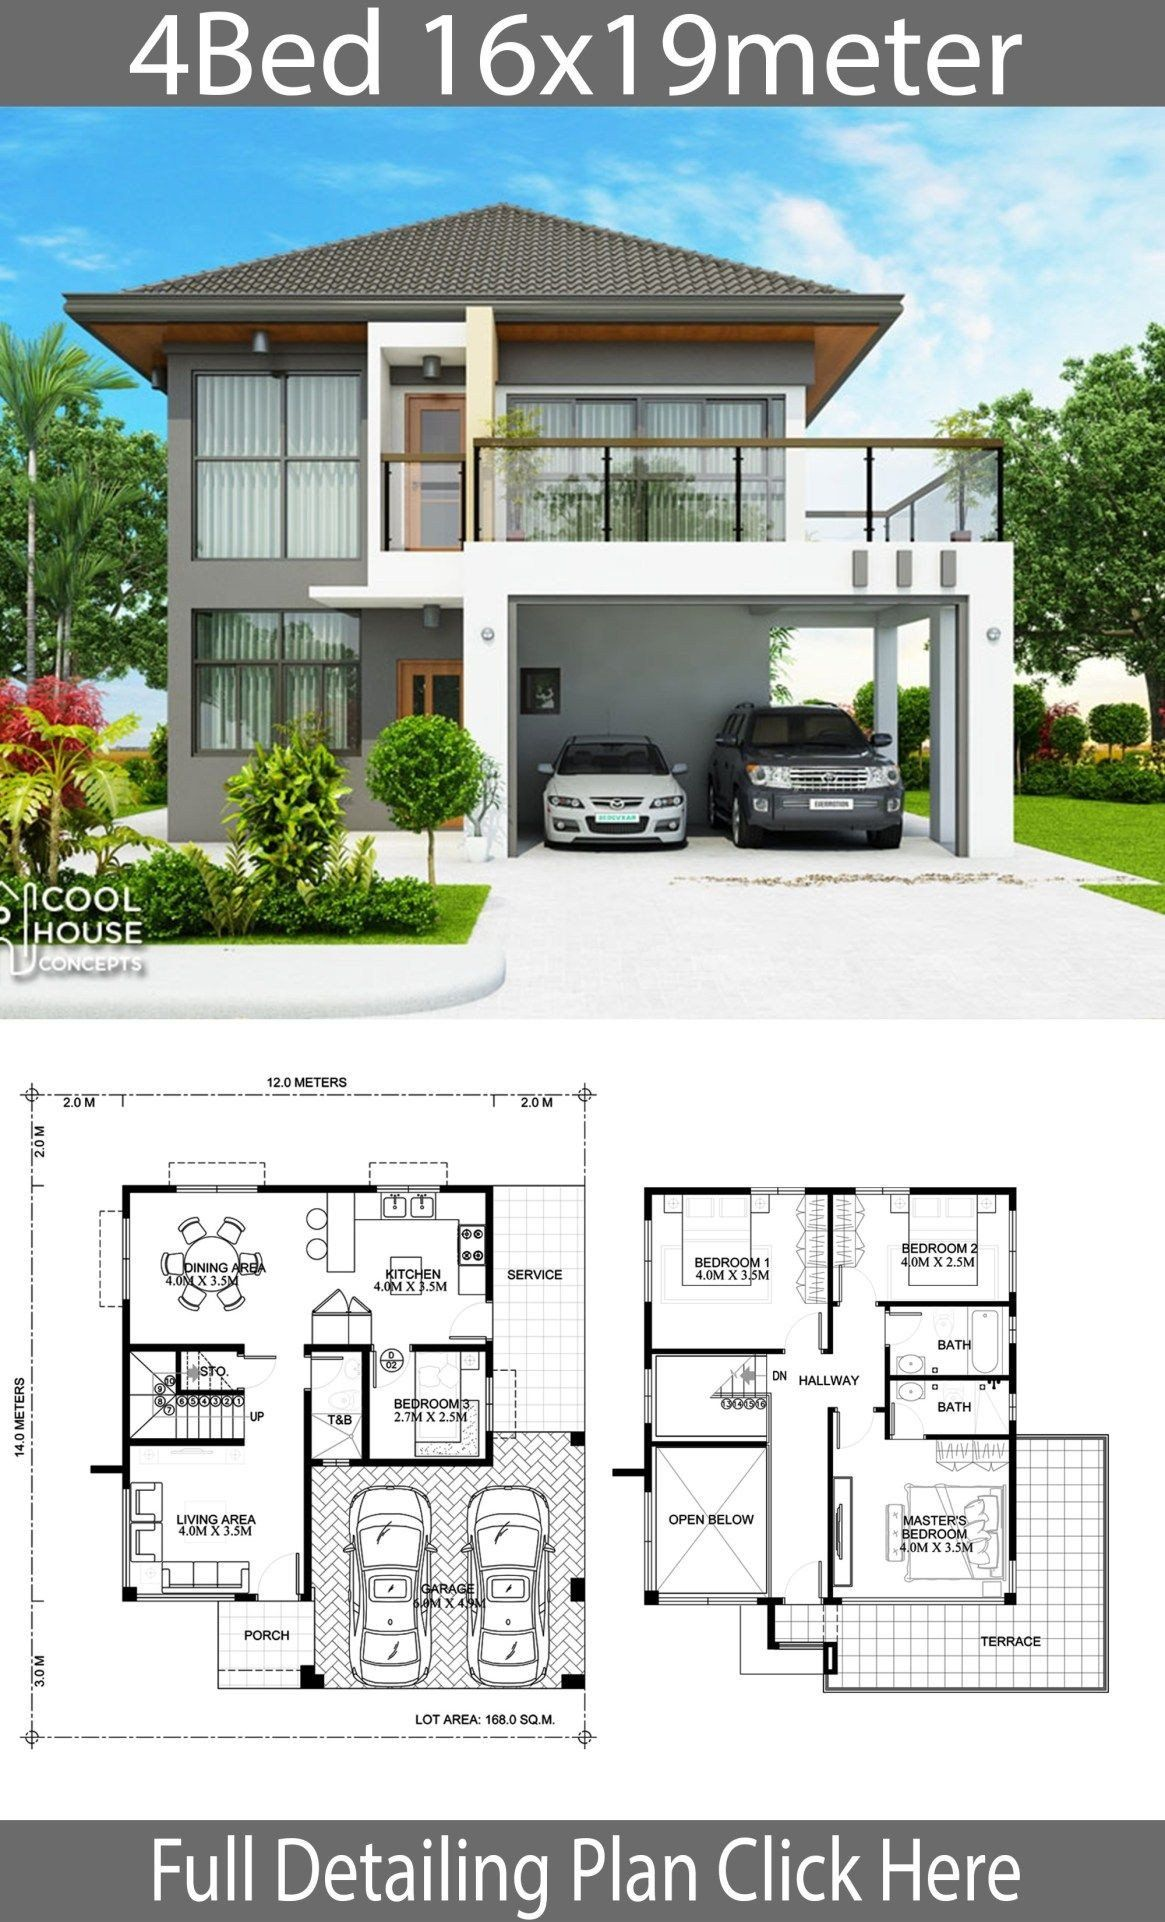 Modern House Plans Philippines Home Design Plan 16x19m With 4 Bedrooms Em 2020 Casa De Arquitetura Projectos De Casas Sacadas De Casas